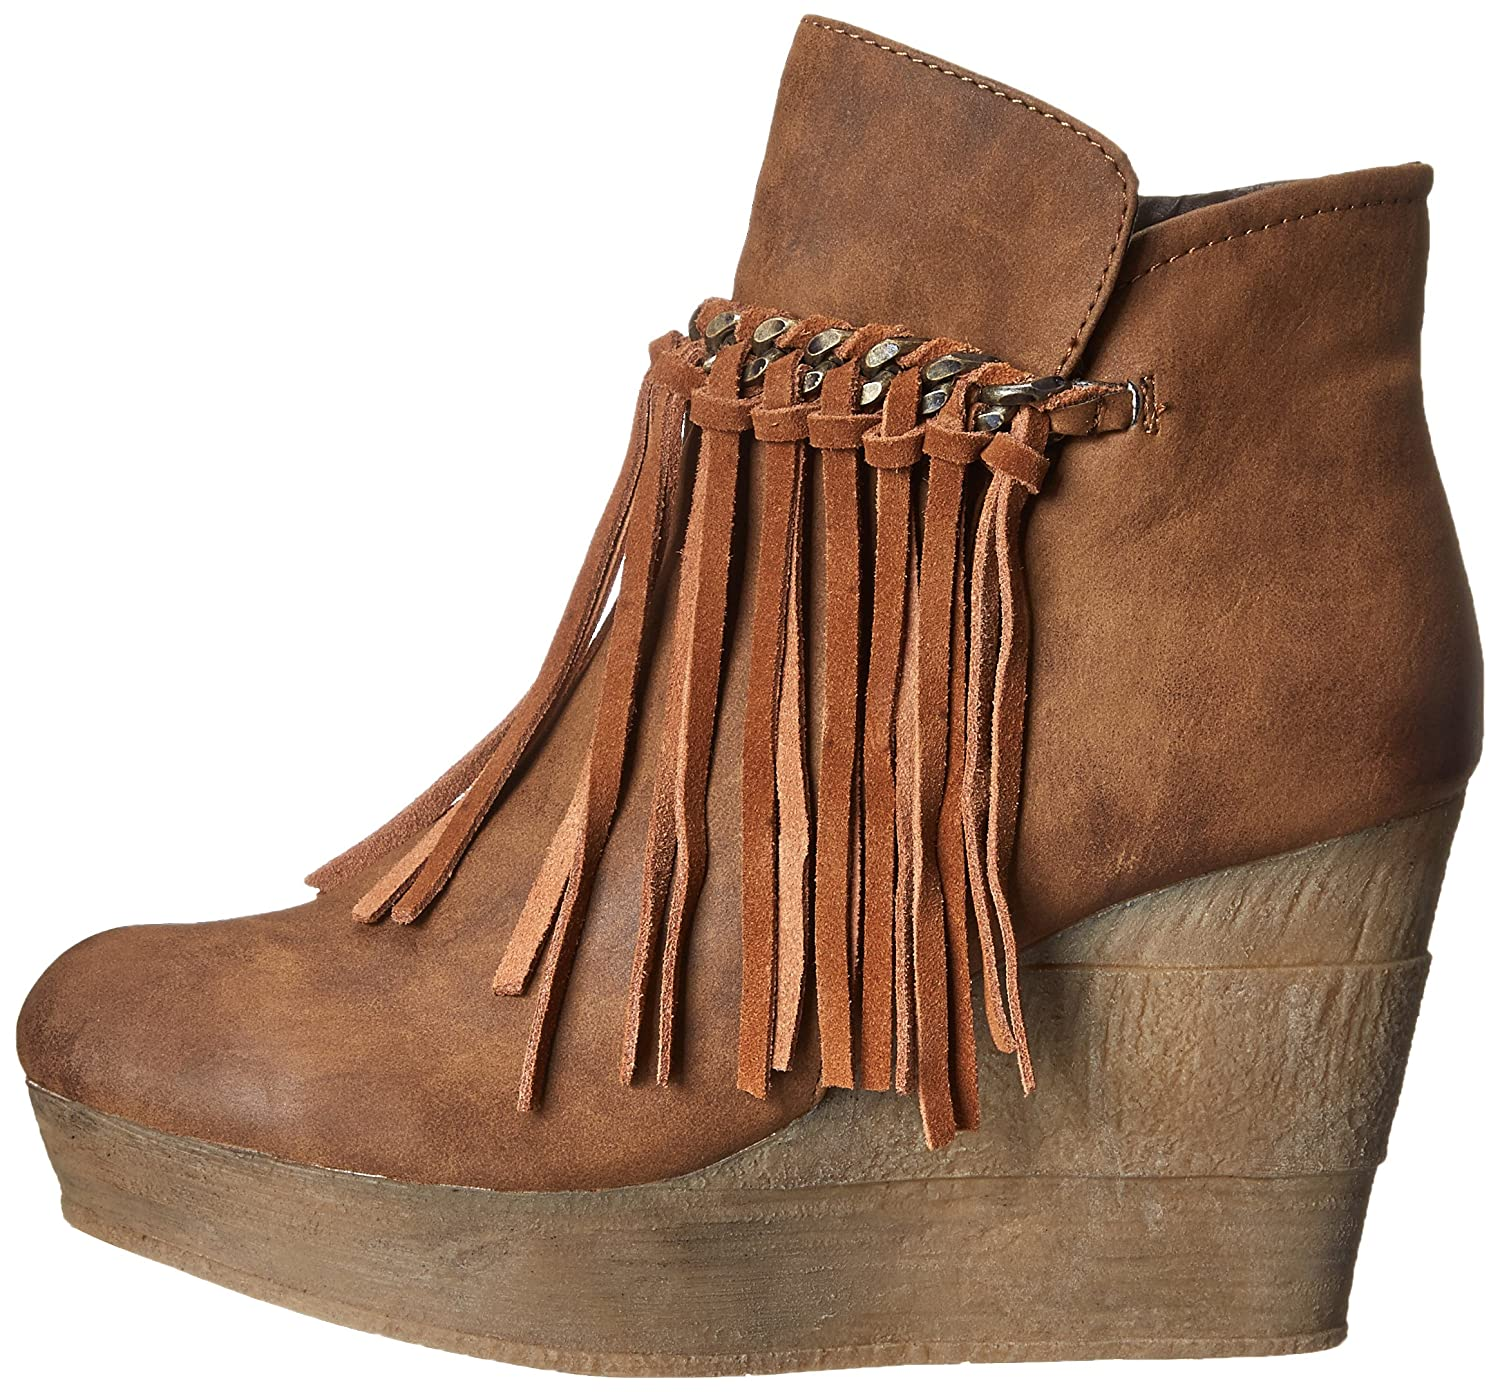 3832b71ac7be ... Sbicca Women s Zepp Boot B00JVU6H8O 9 B(M) US